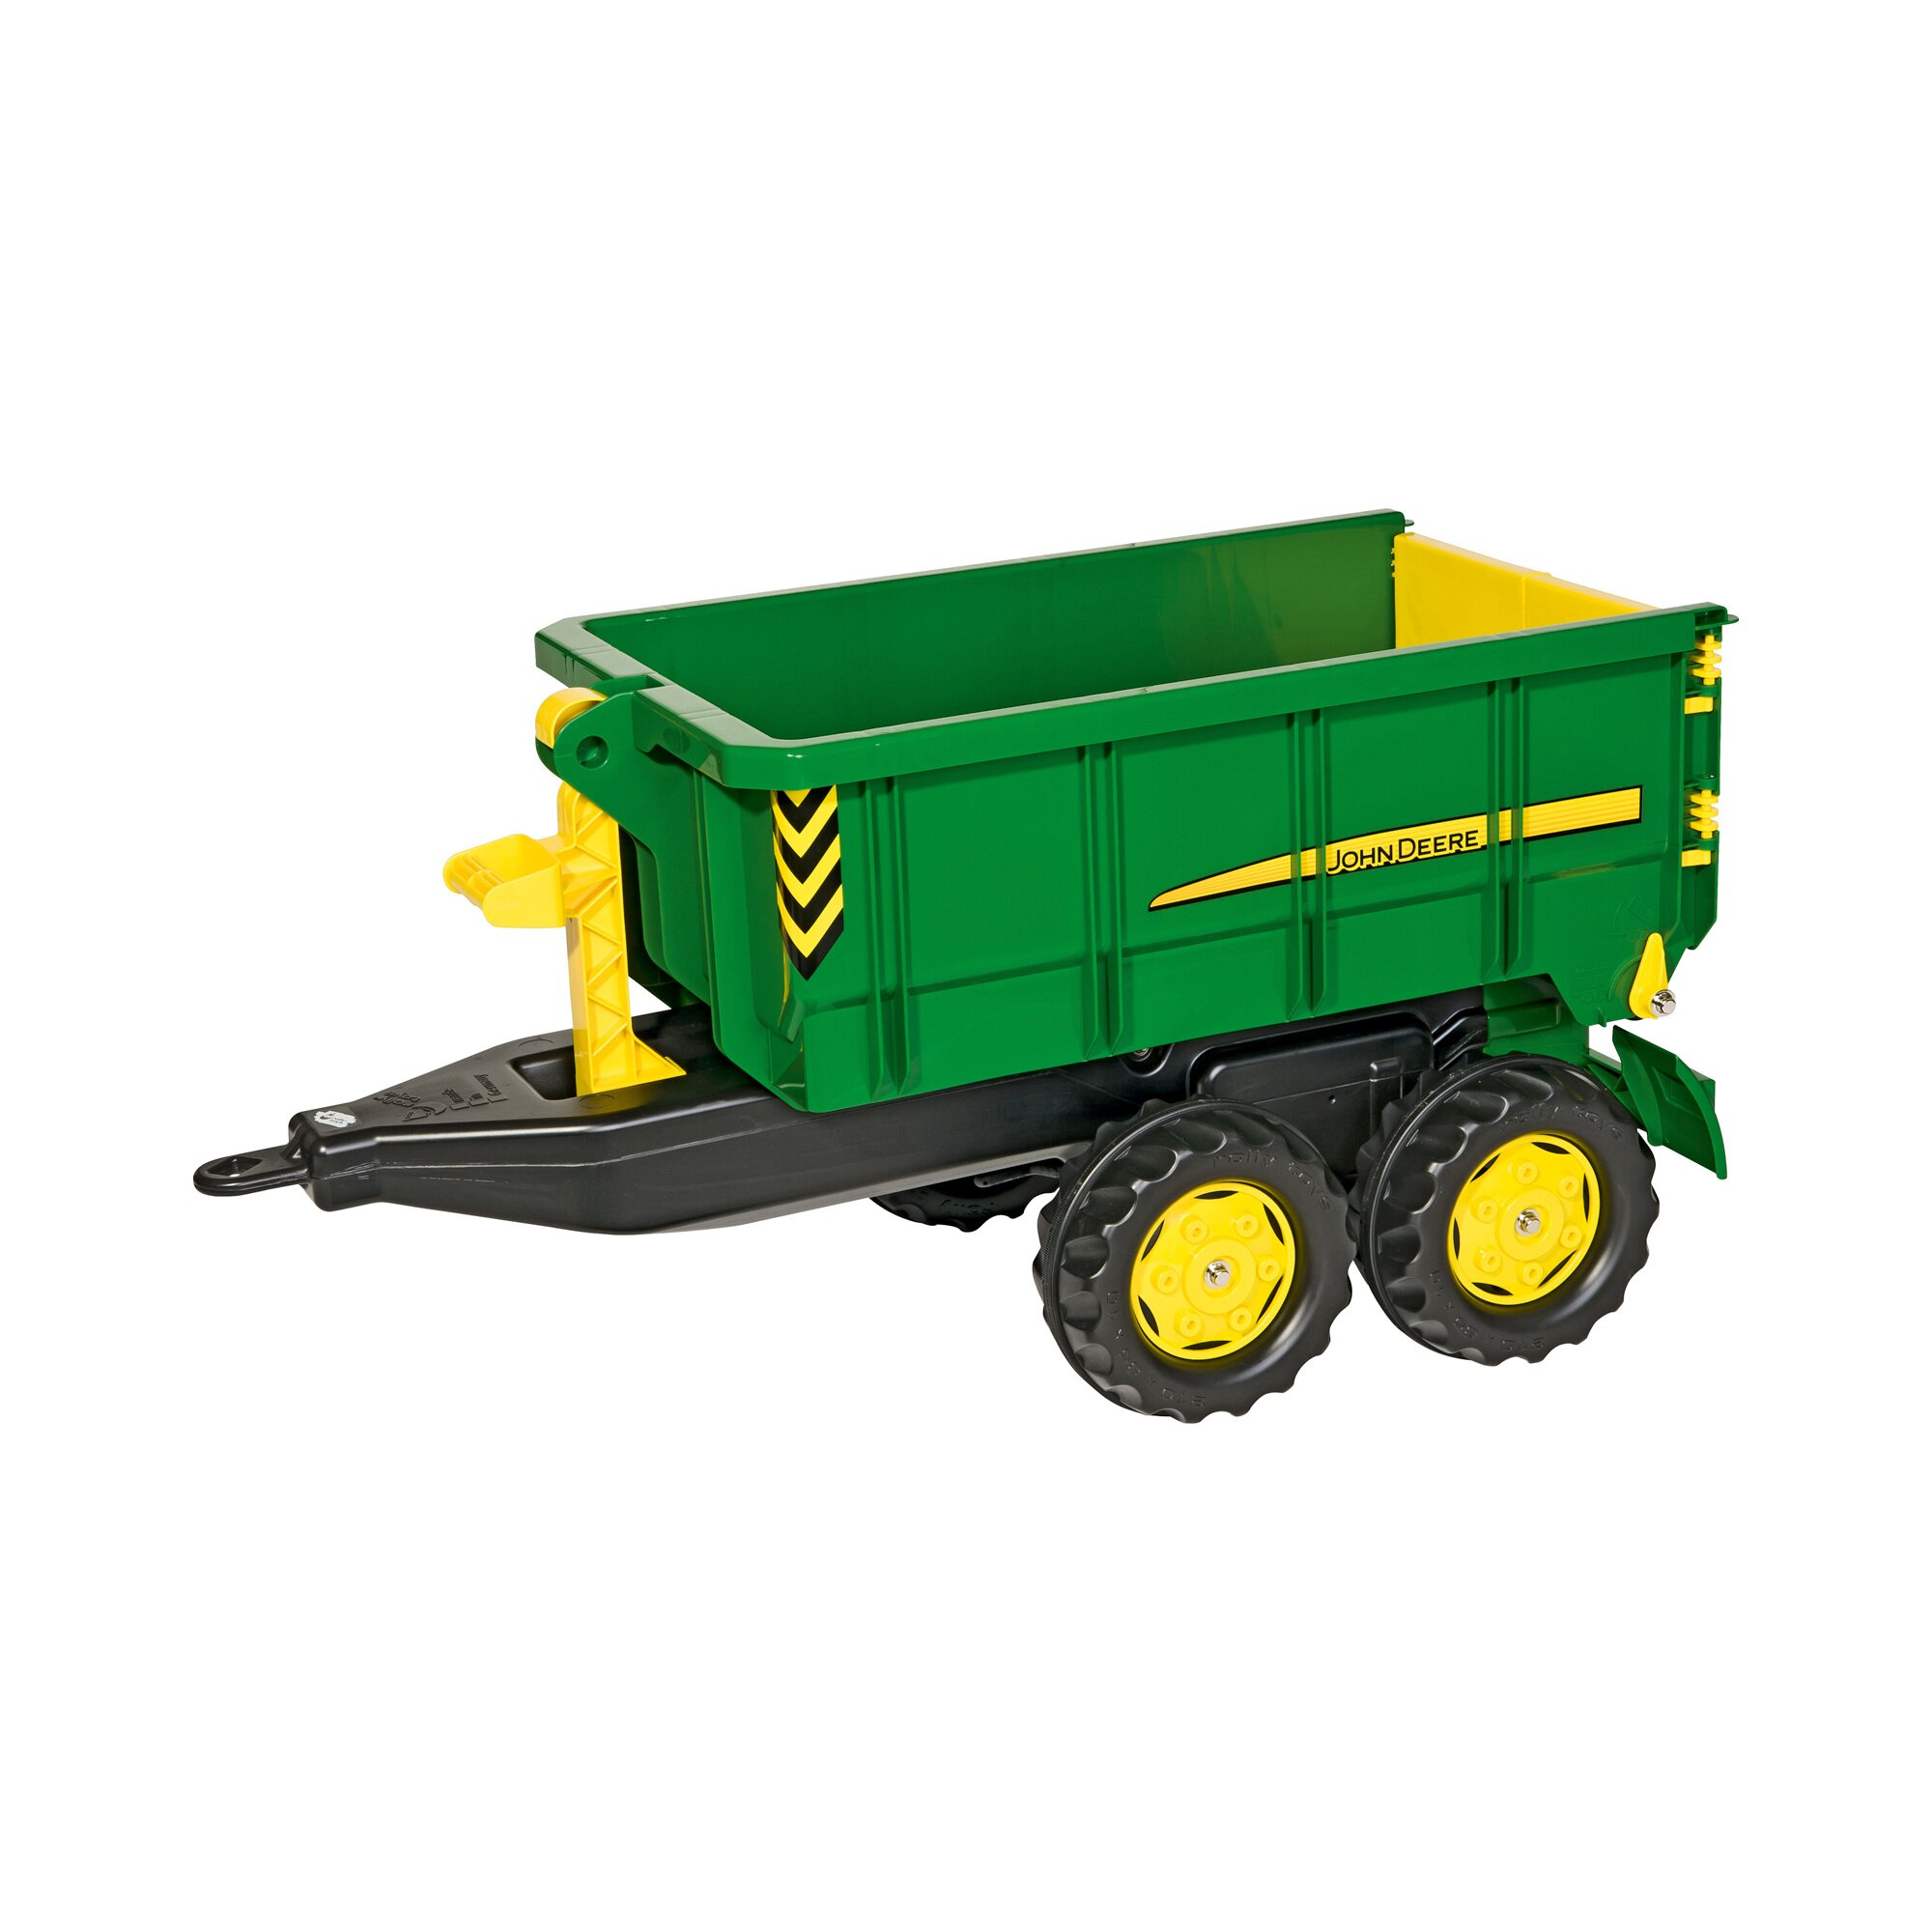 Rolly Toys® Kipper rollyContainer John Deere